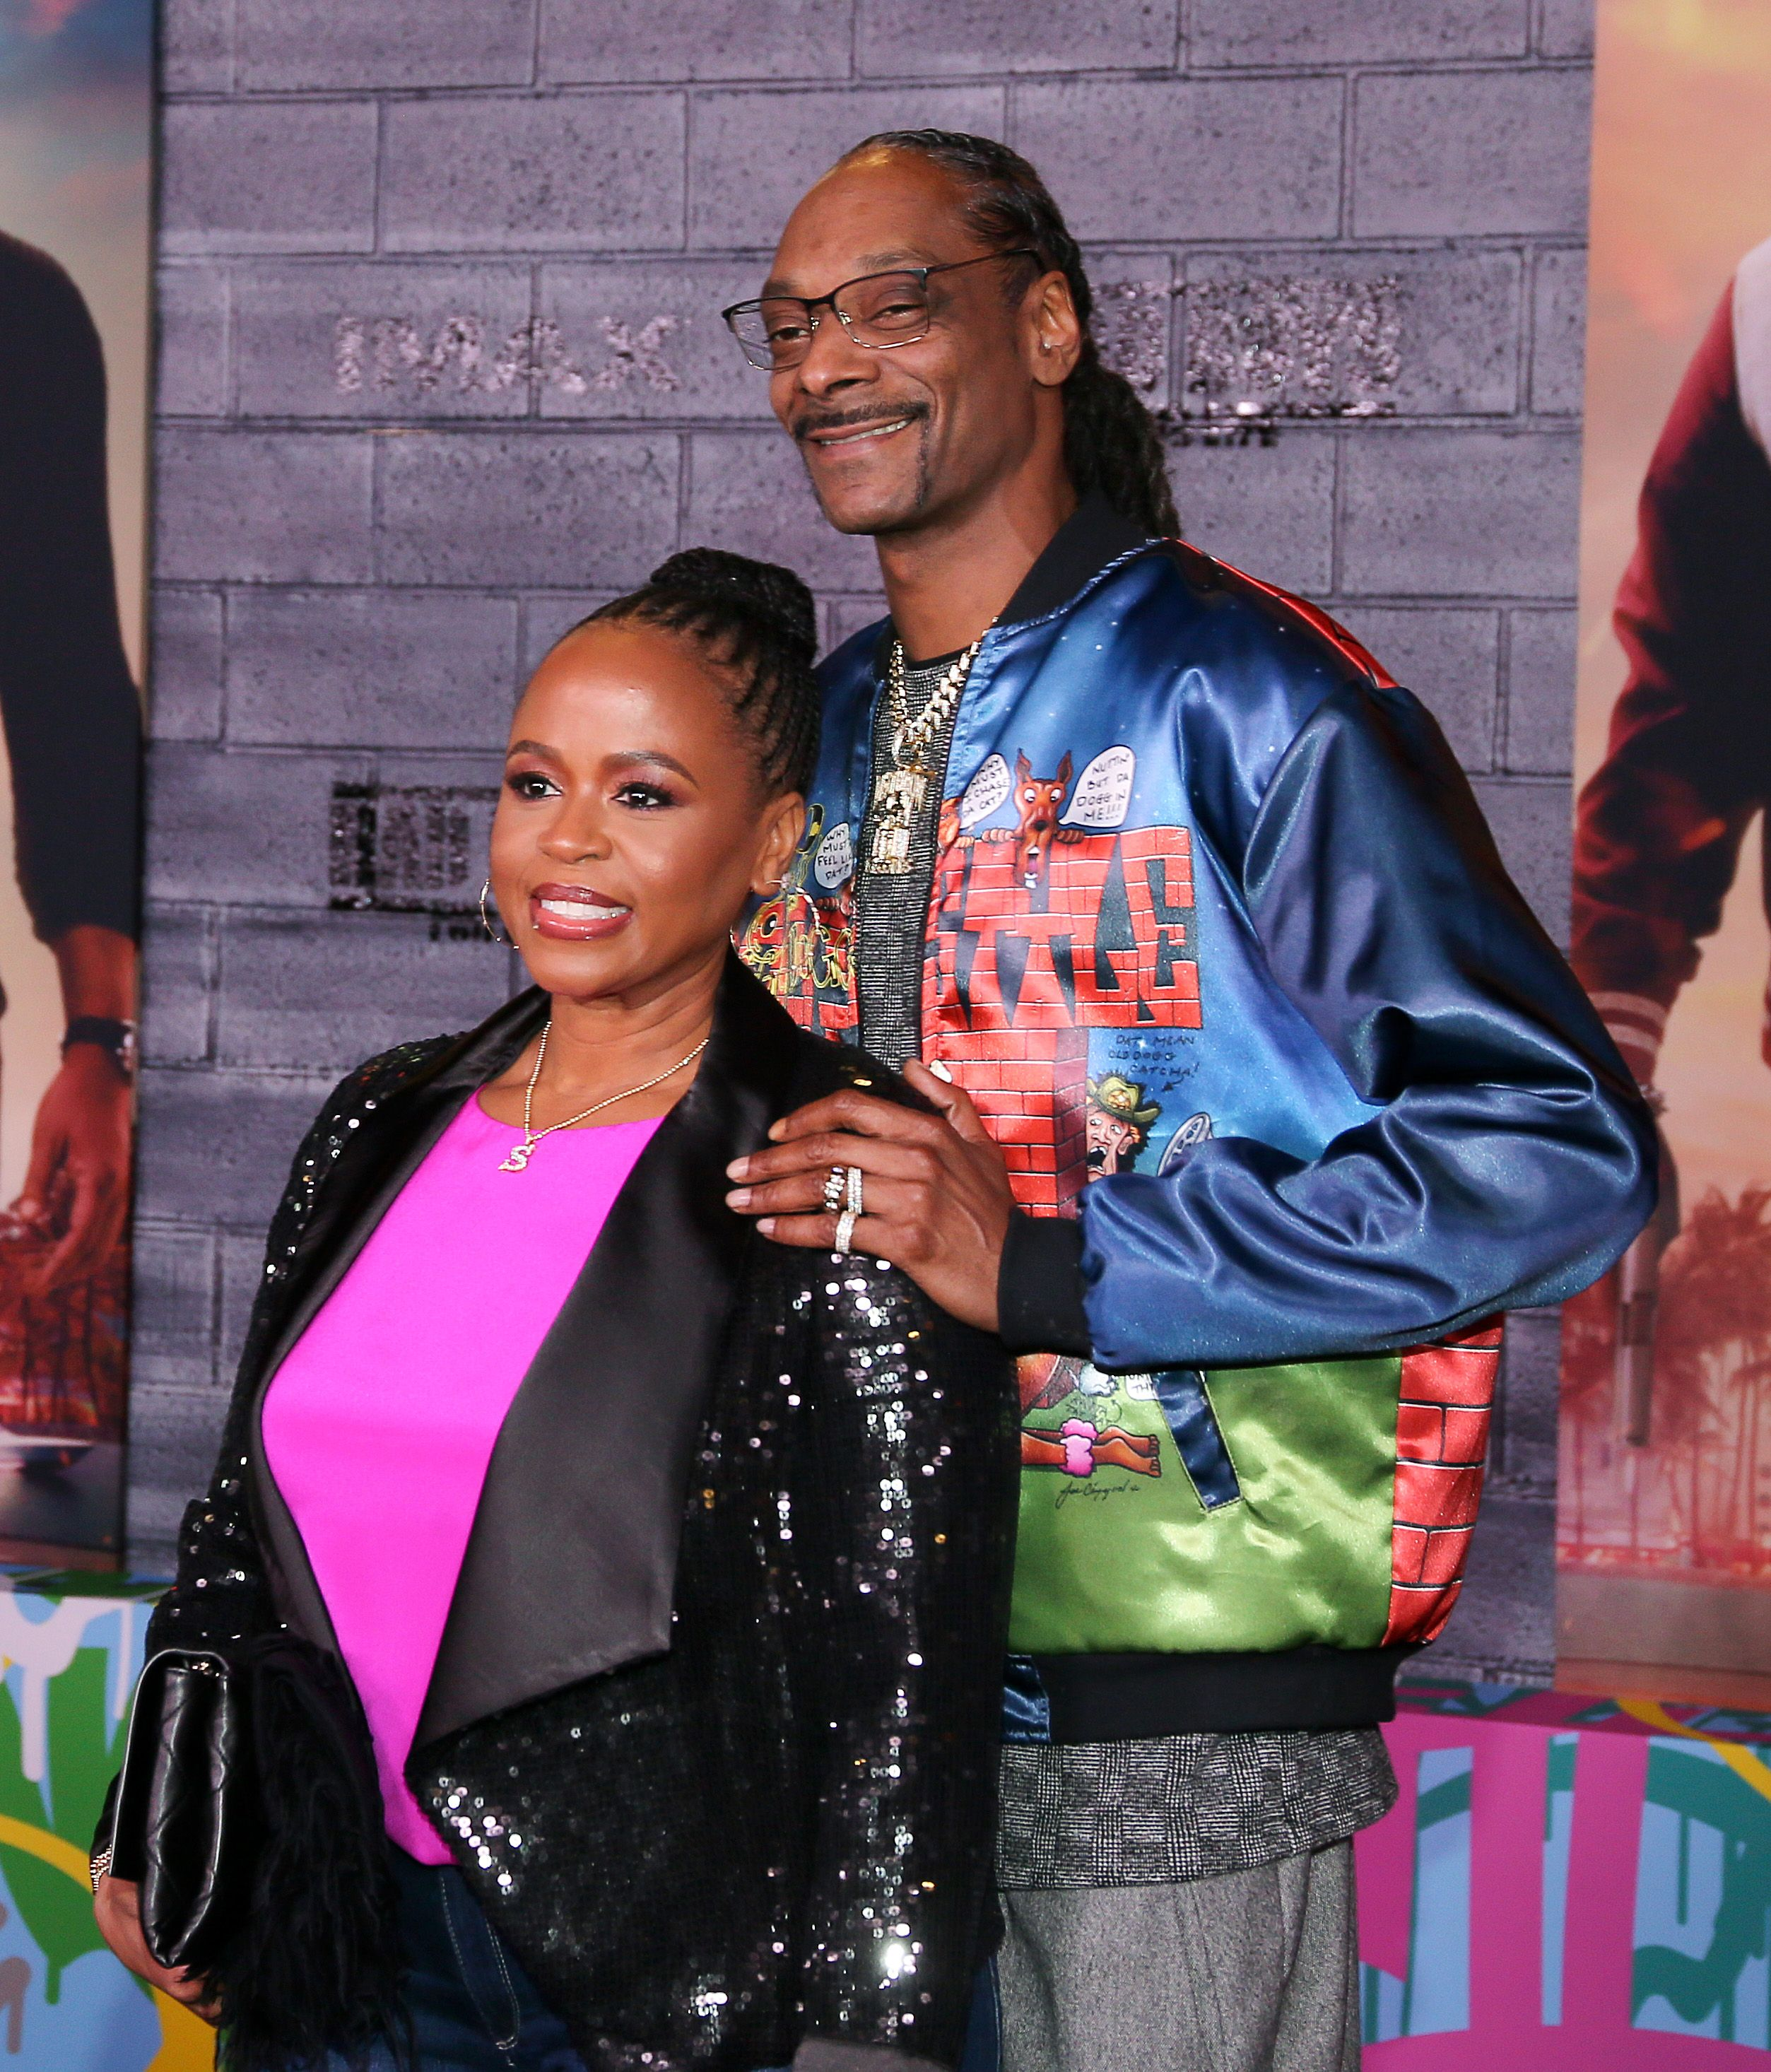 """Shante Broadus and Snoop Dogg at the world premiere of """"Bad Boys for Life""""  in Hollywood on January 14, 2020. 